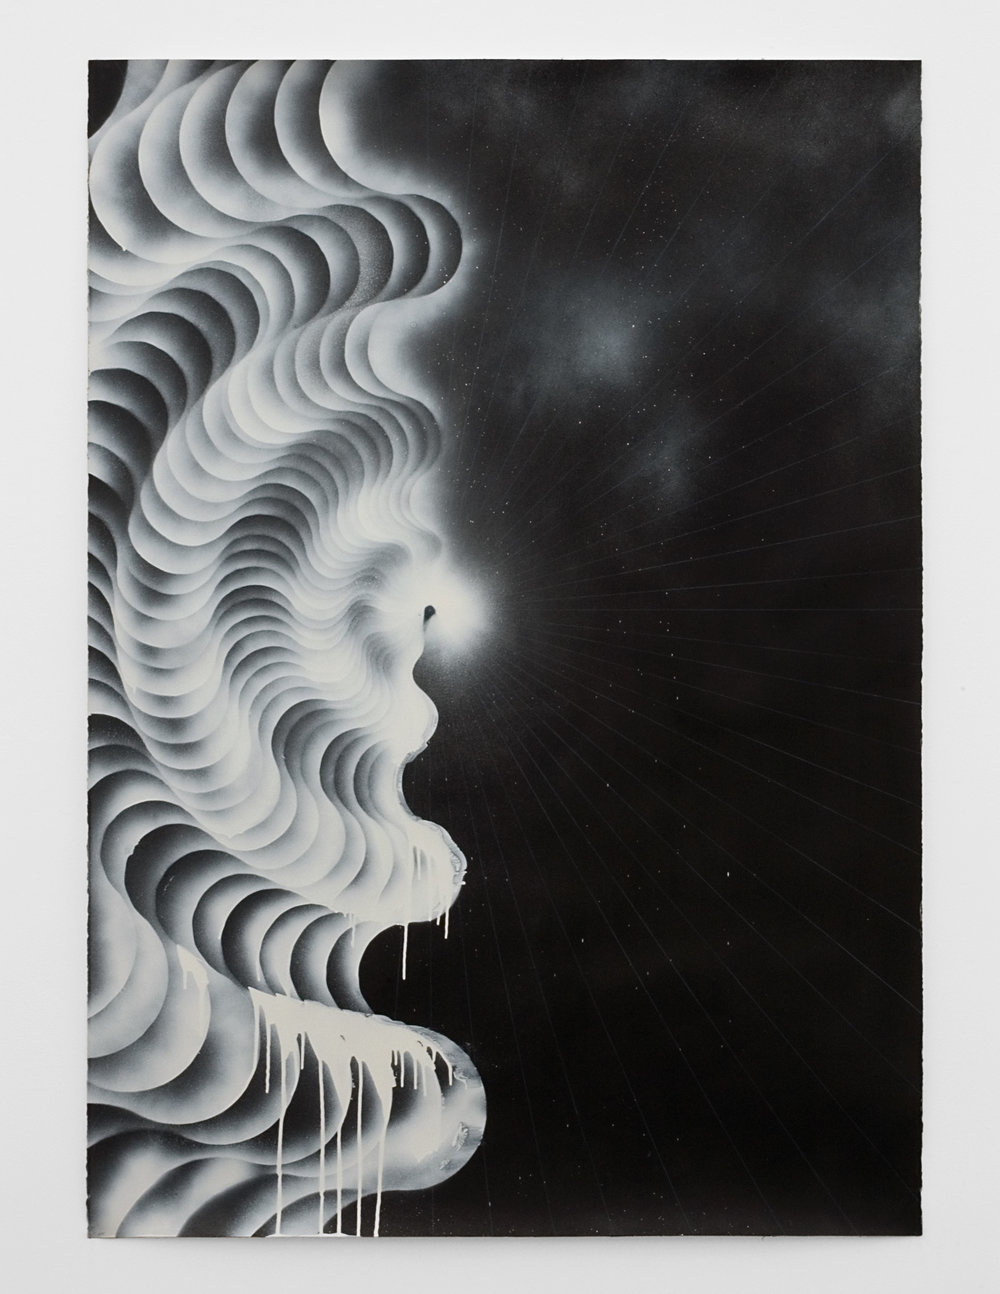 Vortex #2, 2008 sumi ink, acrylic varnish, colored pencil and spray paint on paper 167 x 122,5 cm - 65 3/4 x 48 1/4 inches